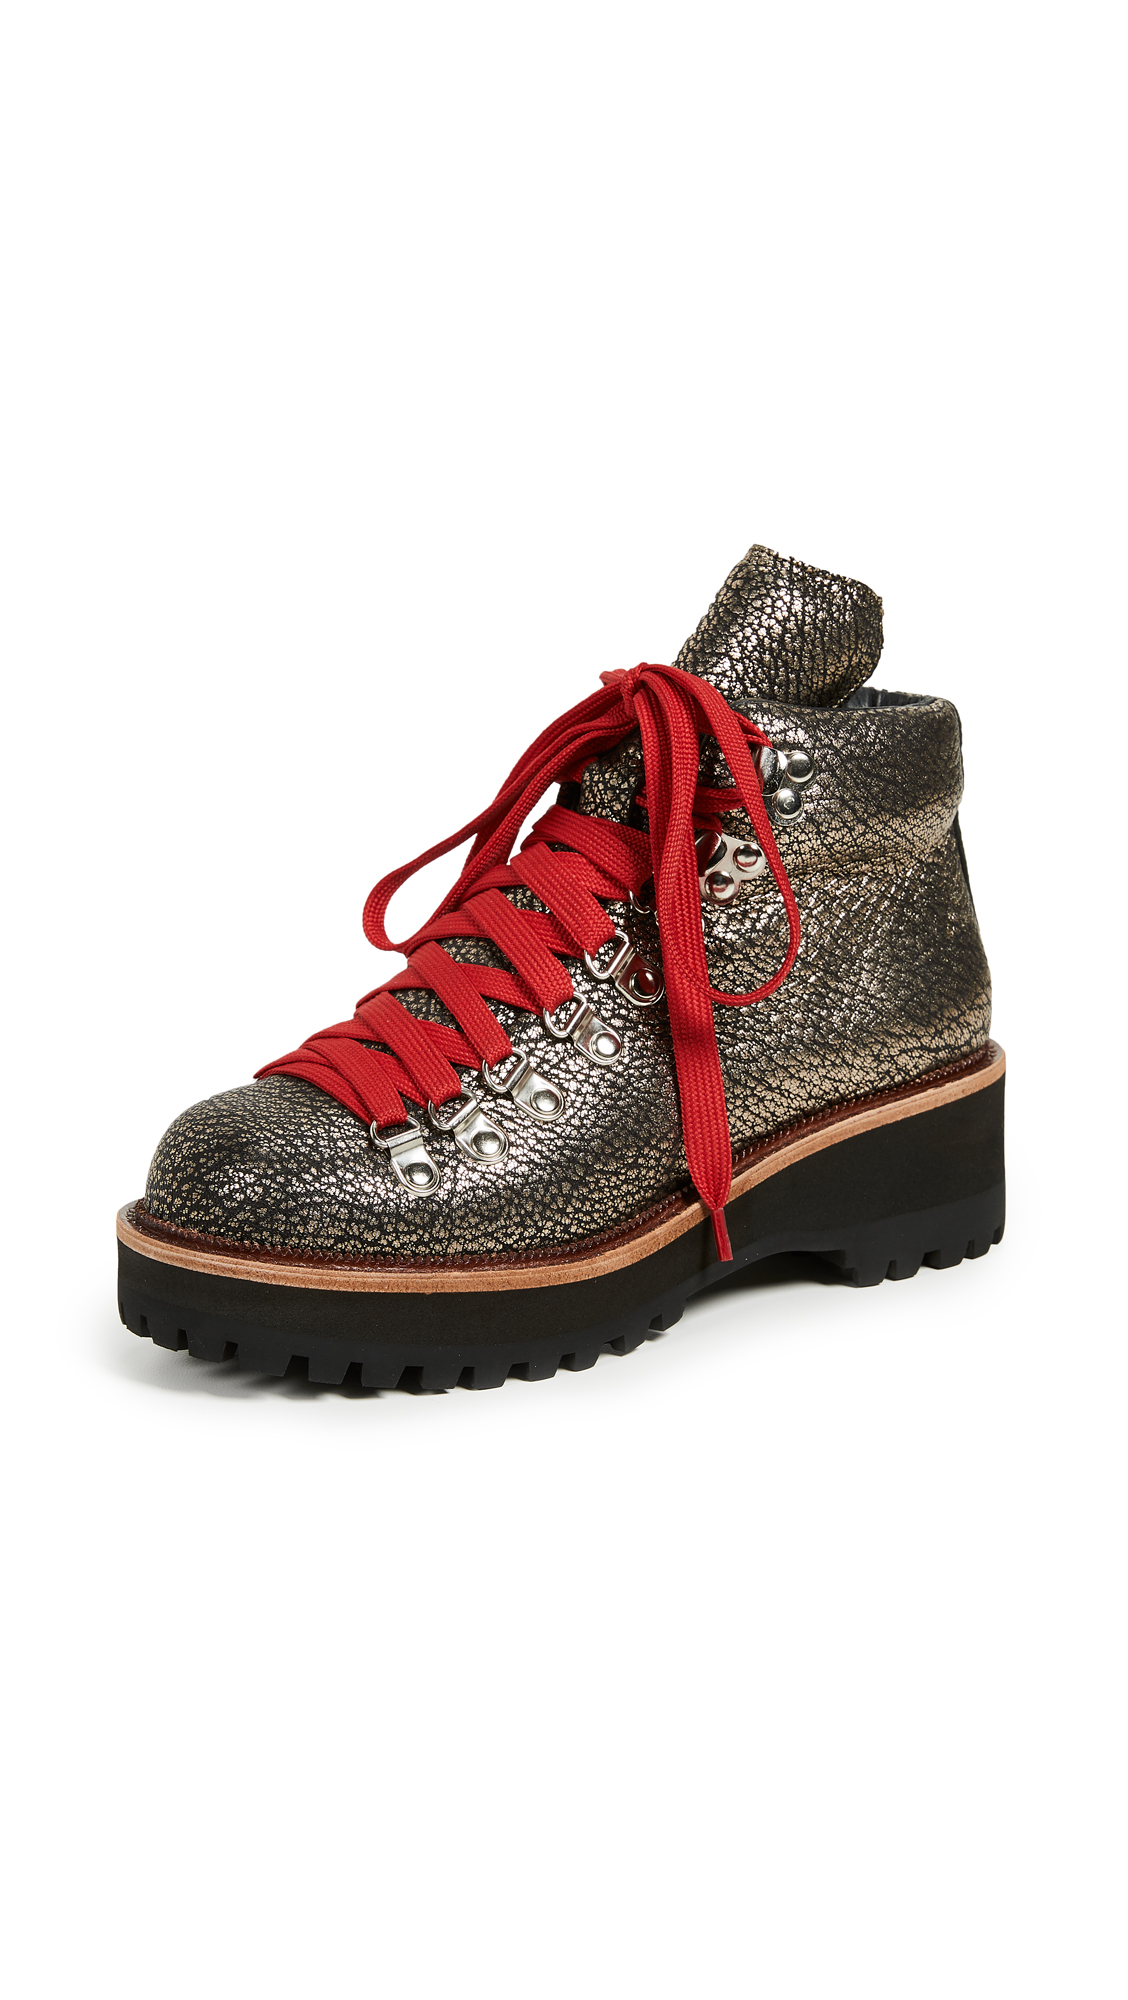 Jeffrey Campbell Explorer Wedge Hiking Booties - Pewter